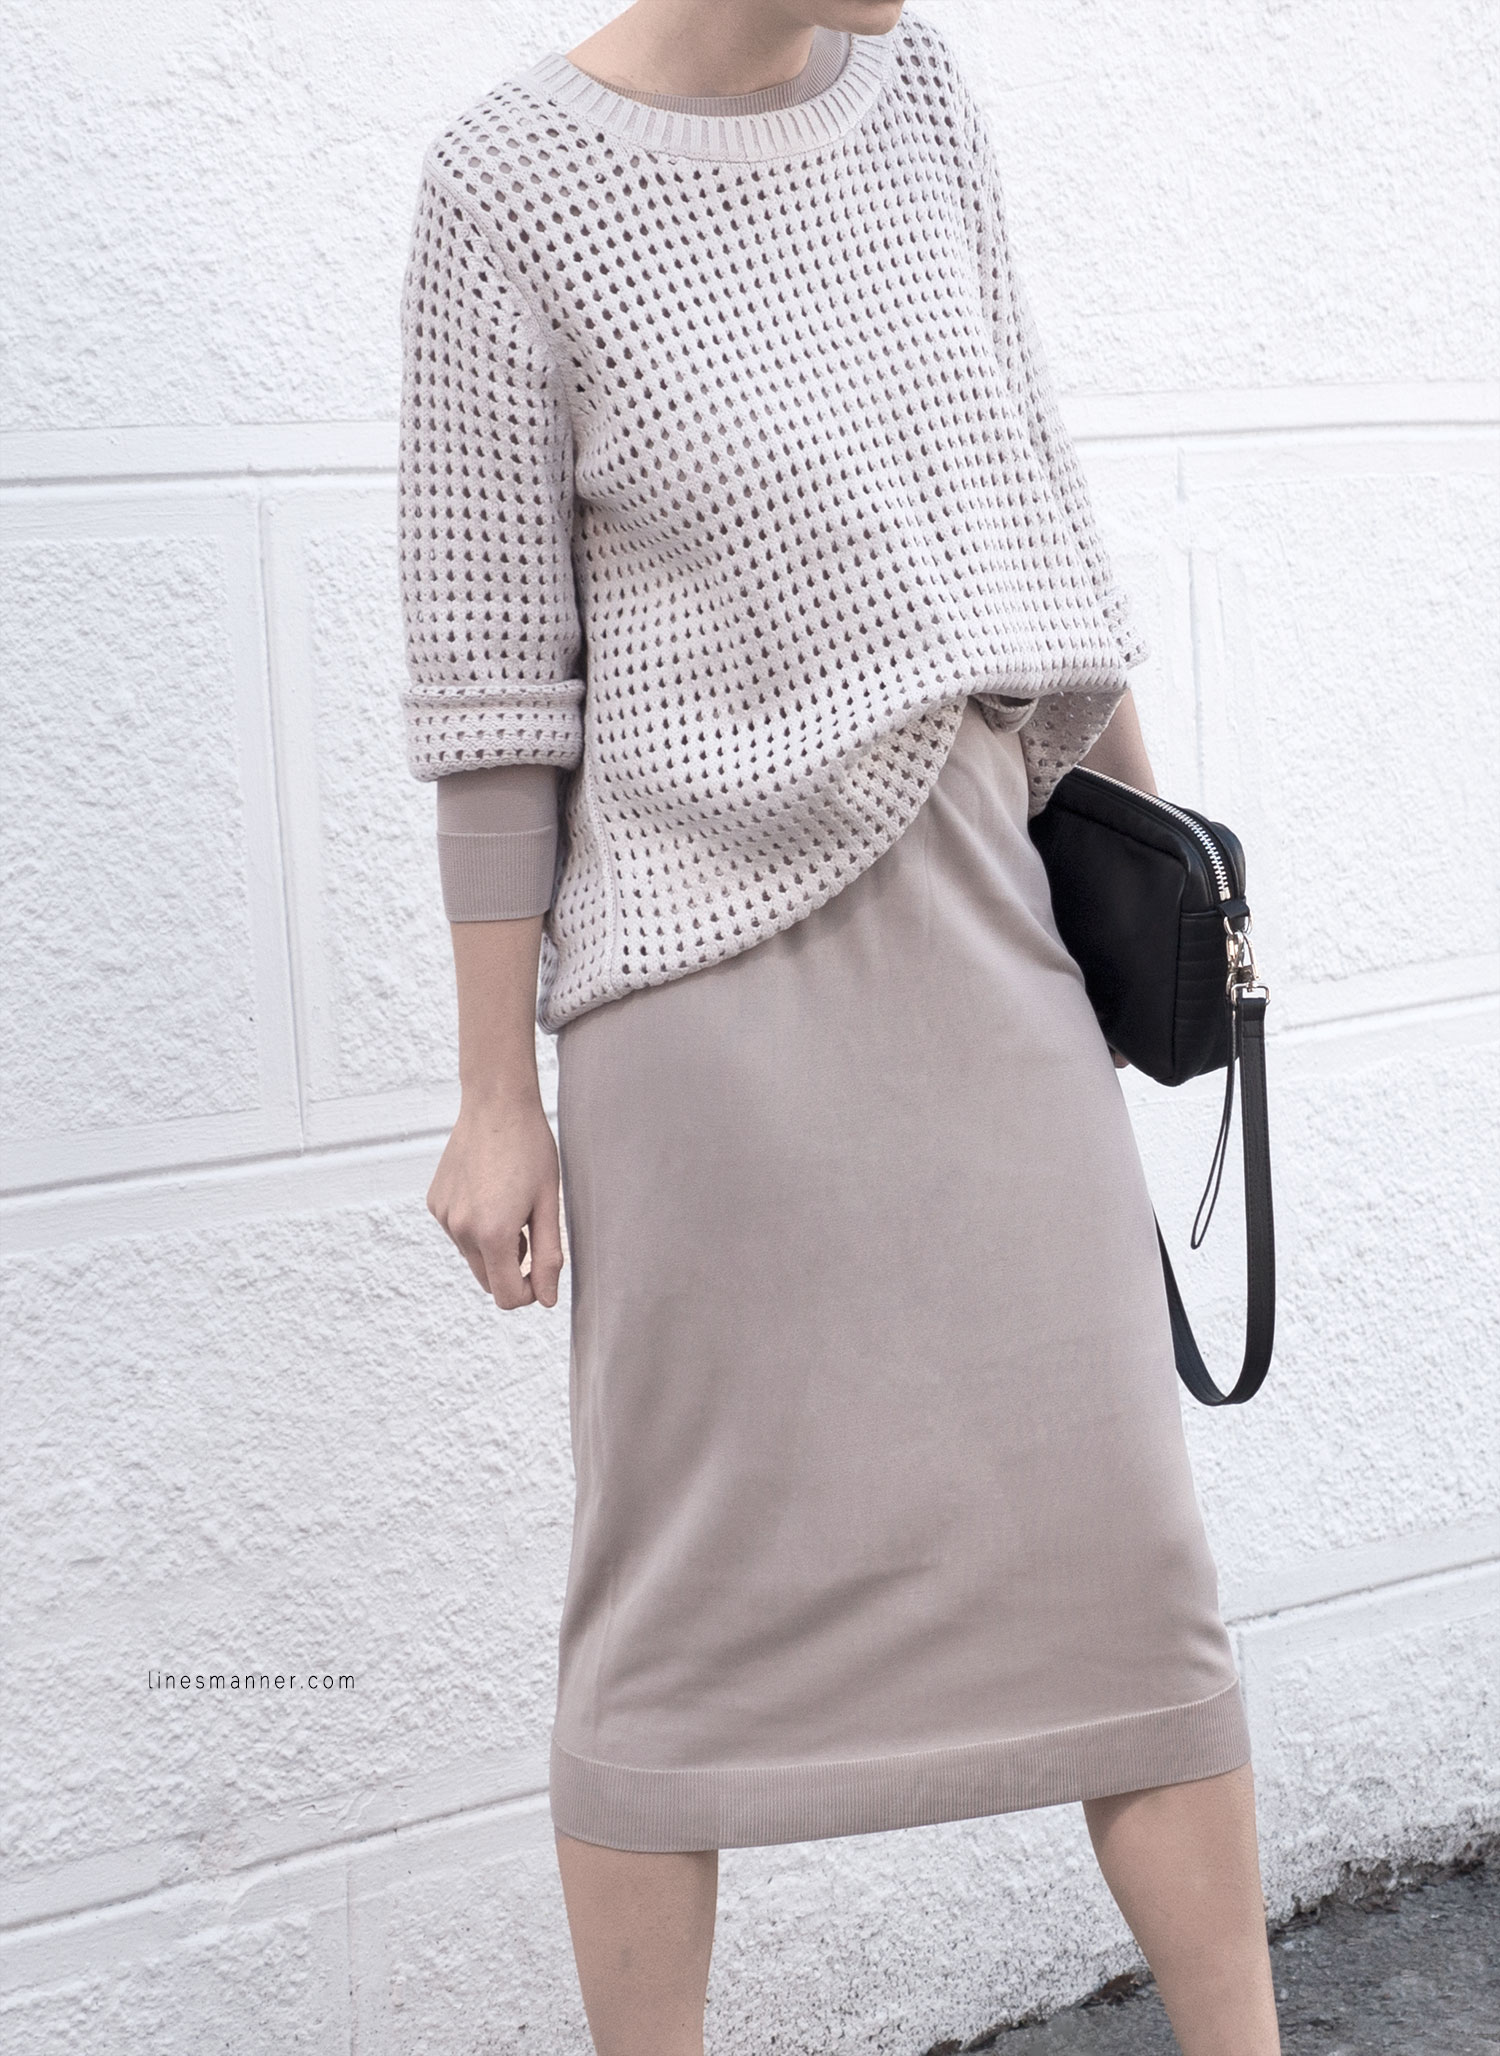 Lines-Manner-Tonal-Shades-Neutrals-Undertones-Essentials-Details-Elegant-Casual-Knit-Maxi_dress-Beige-Cream-Nude-Dimension-Skin-COS-Light-16